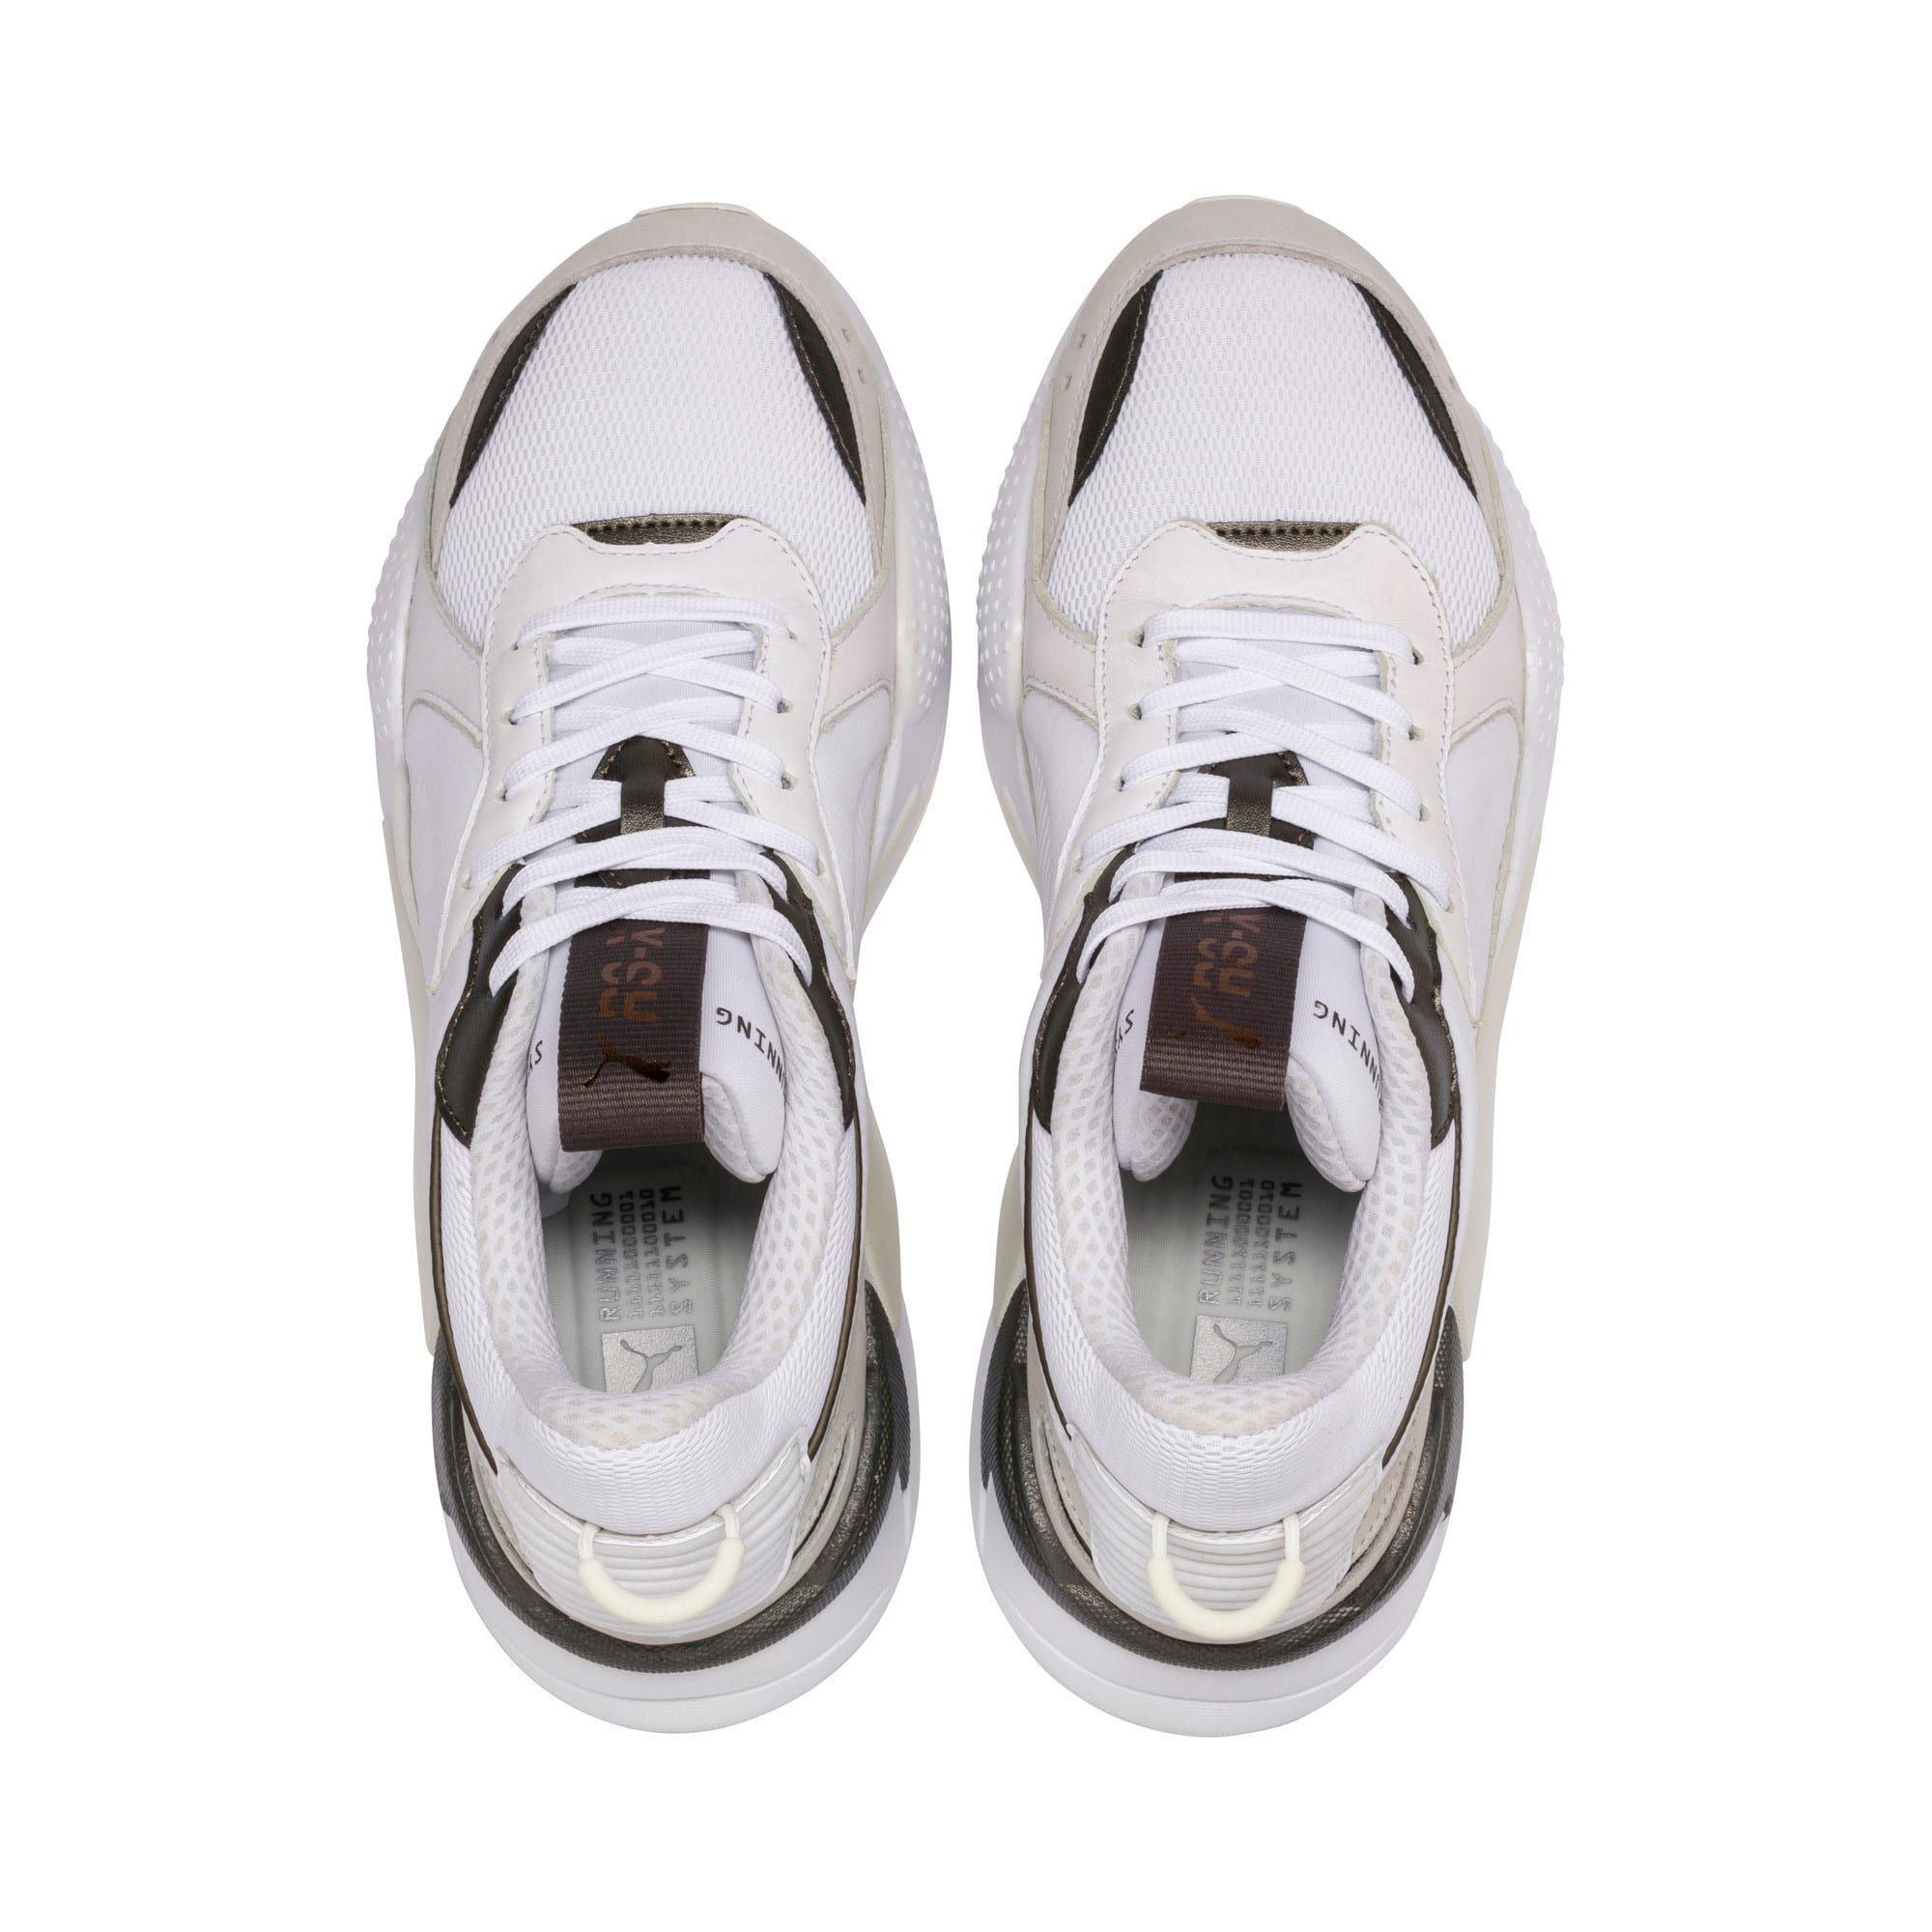 Thumbnail 7 of RS-X TROPHY, Puma White-Bronze, medium-JPN